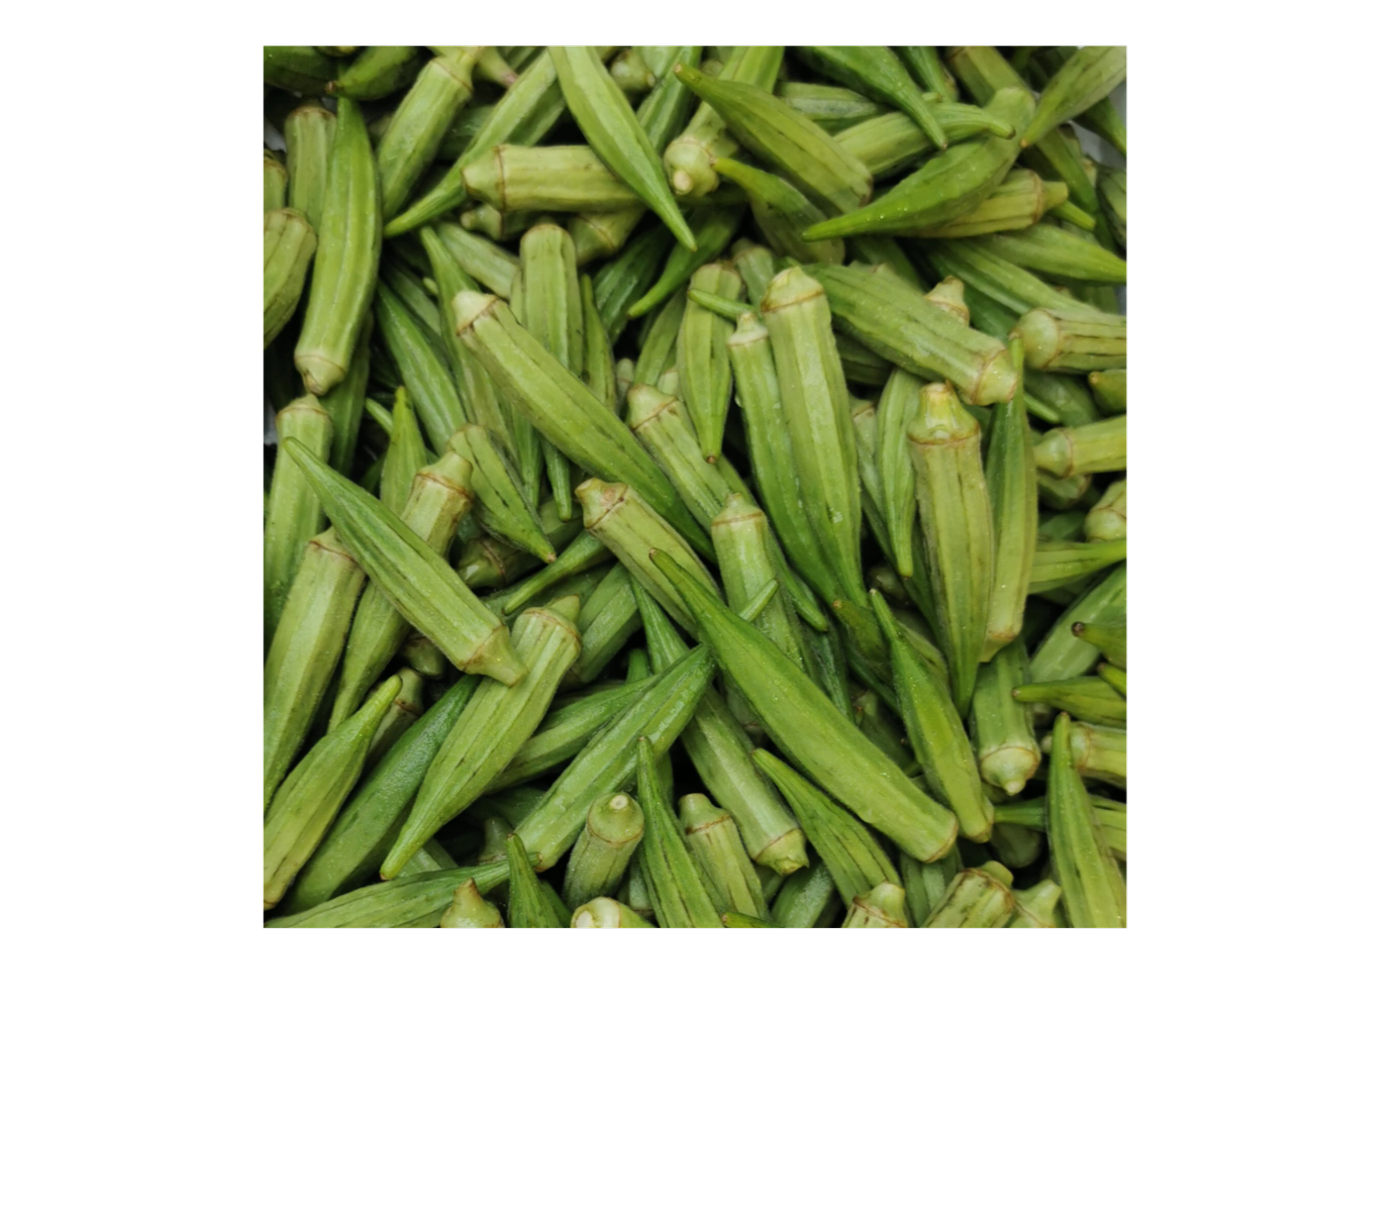 Fresh Ladies Finger(Okra)